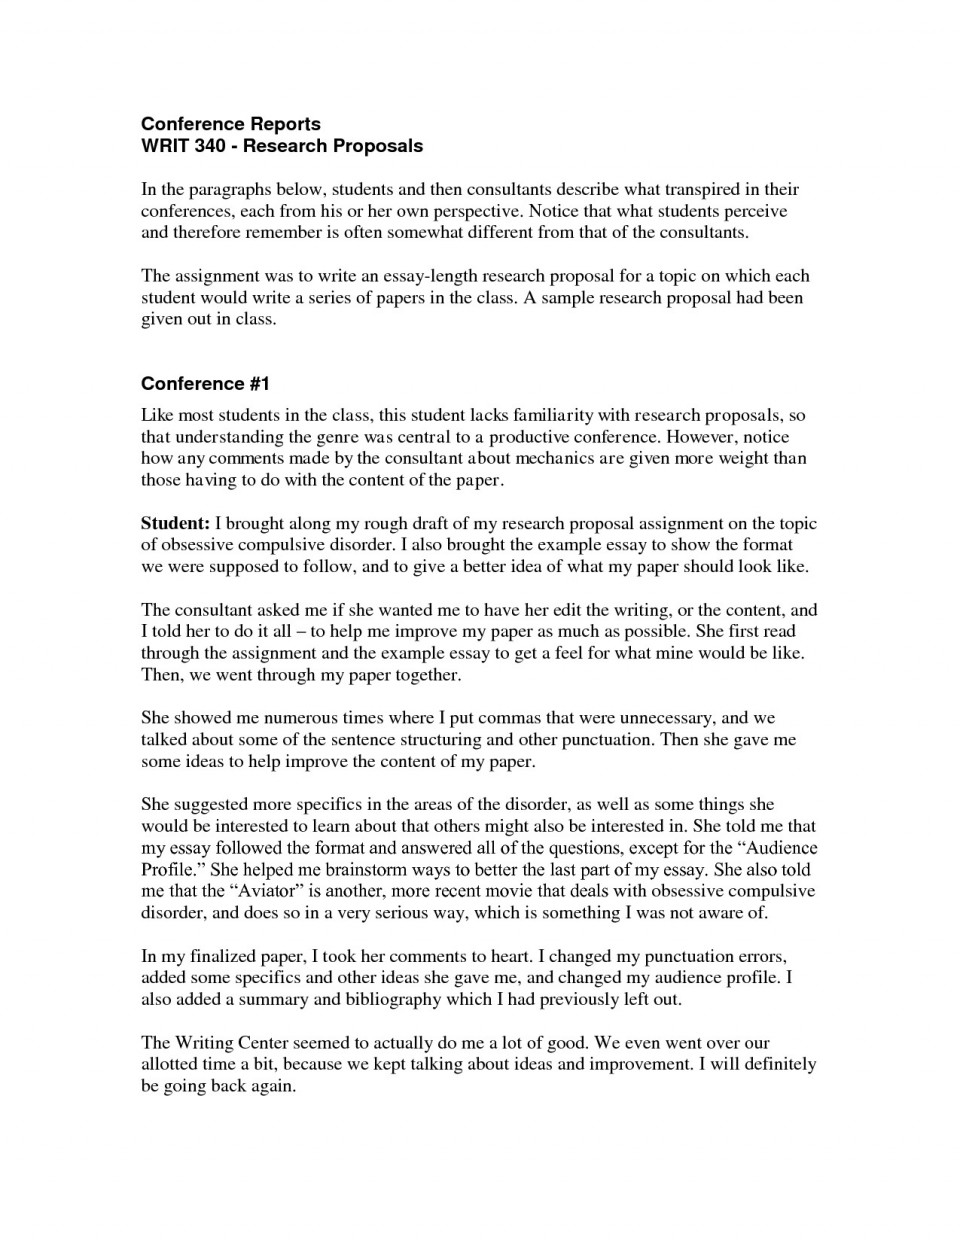 028 Apa Research Paper Proposal Sample Letter Outstanding Format Generator Example Purdue Owl 960